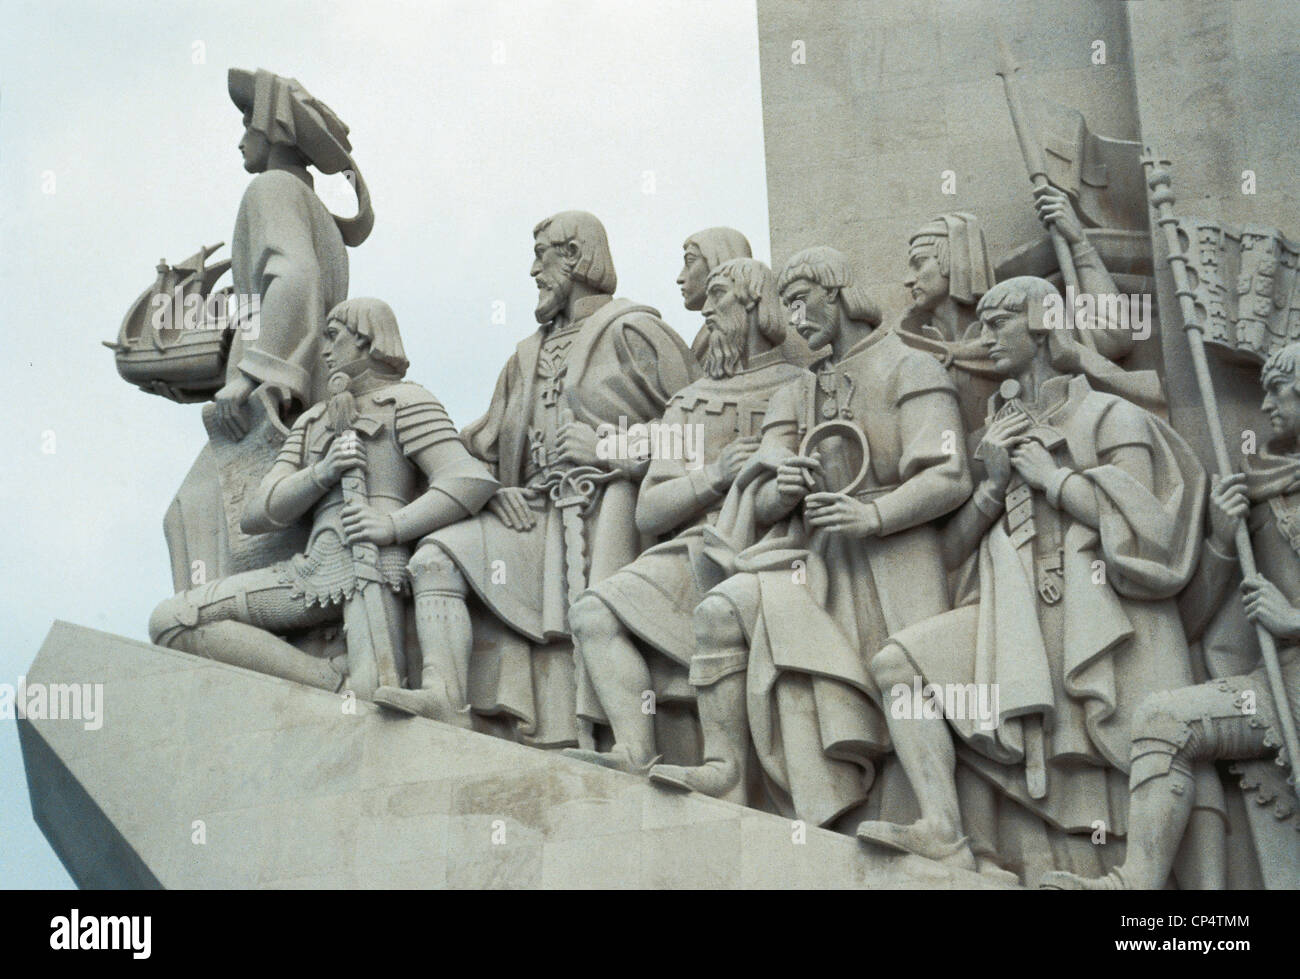 Portugal Lisbon Monument To Henry The Conqueror - Stock Image